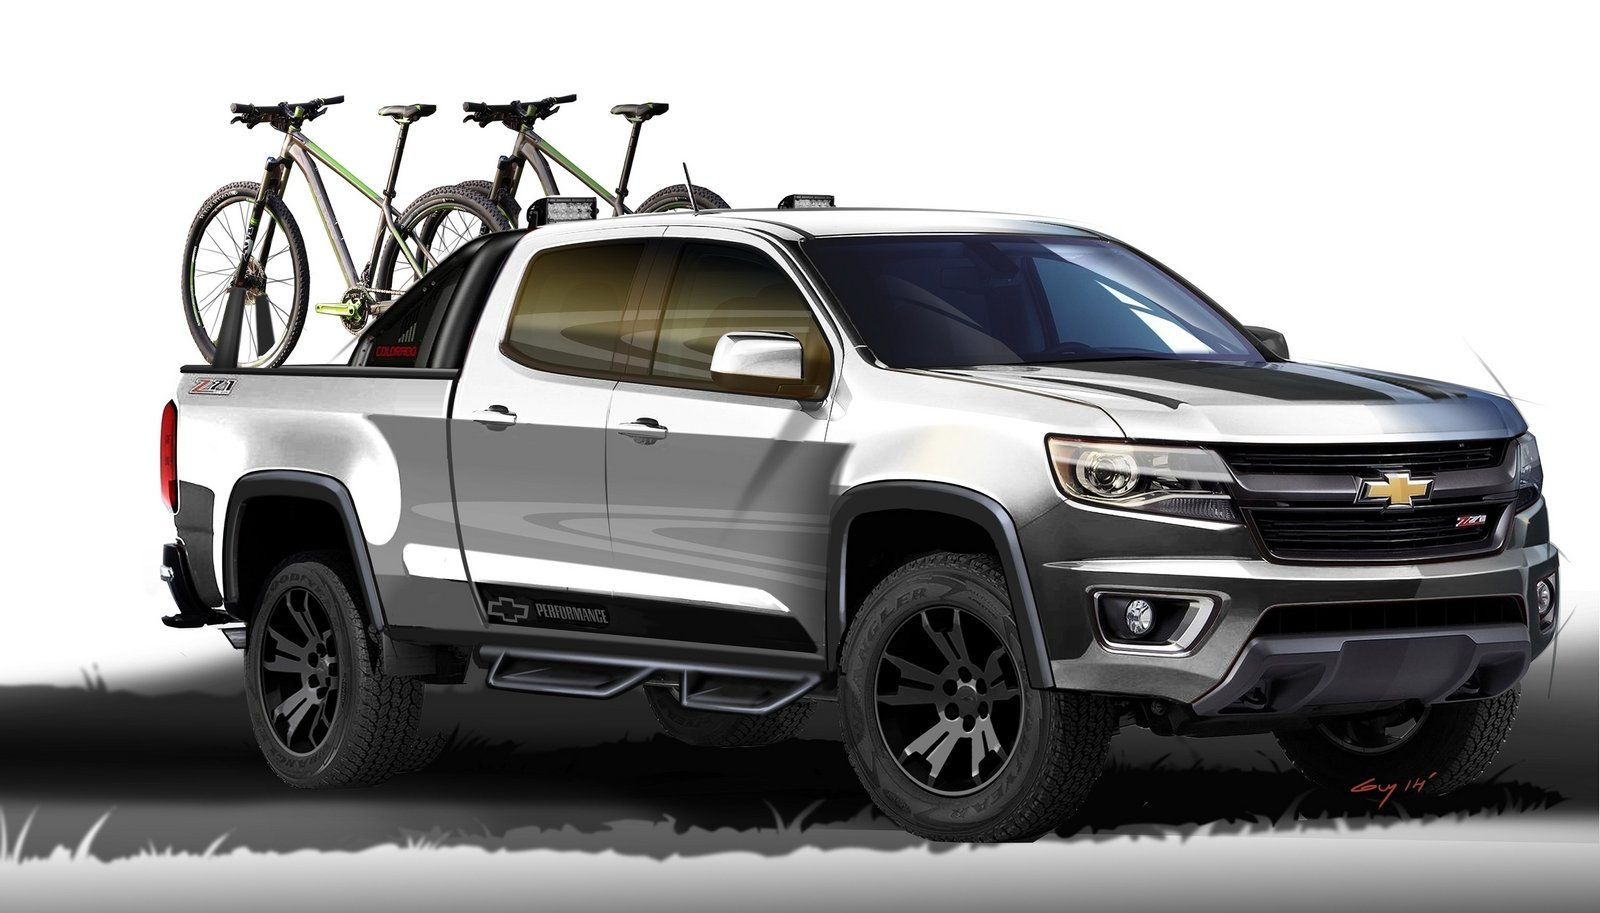 2015 Chevrolet Colorado Sport Concept Review - Top Speed